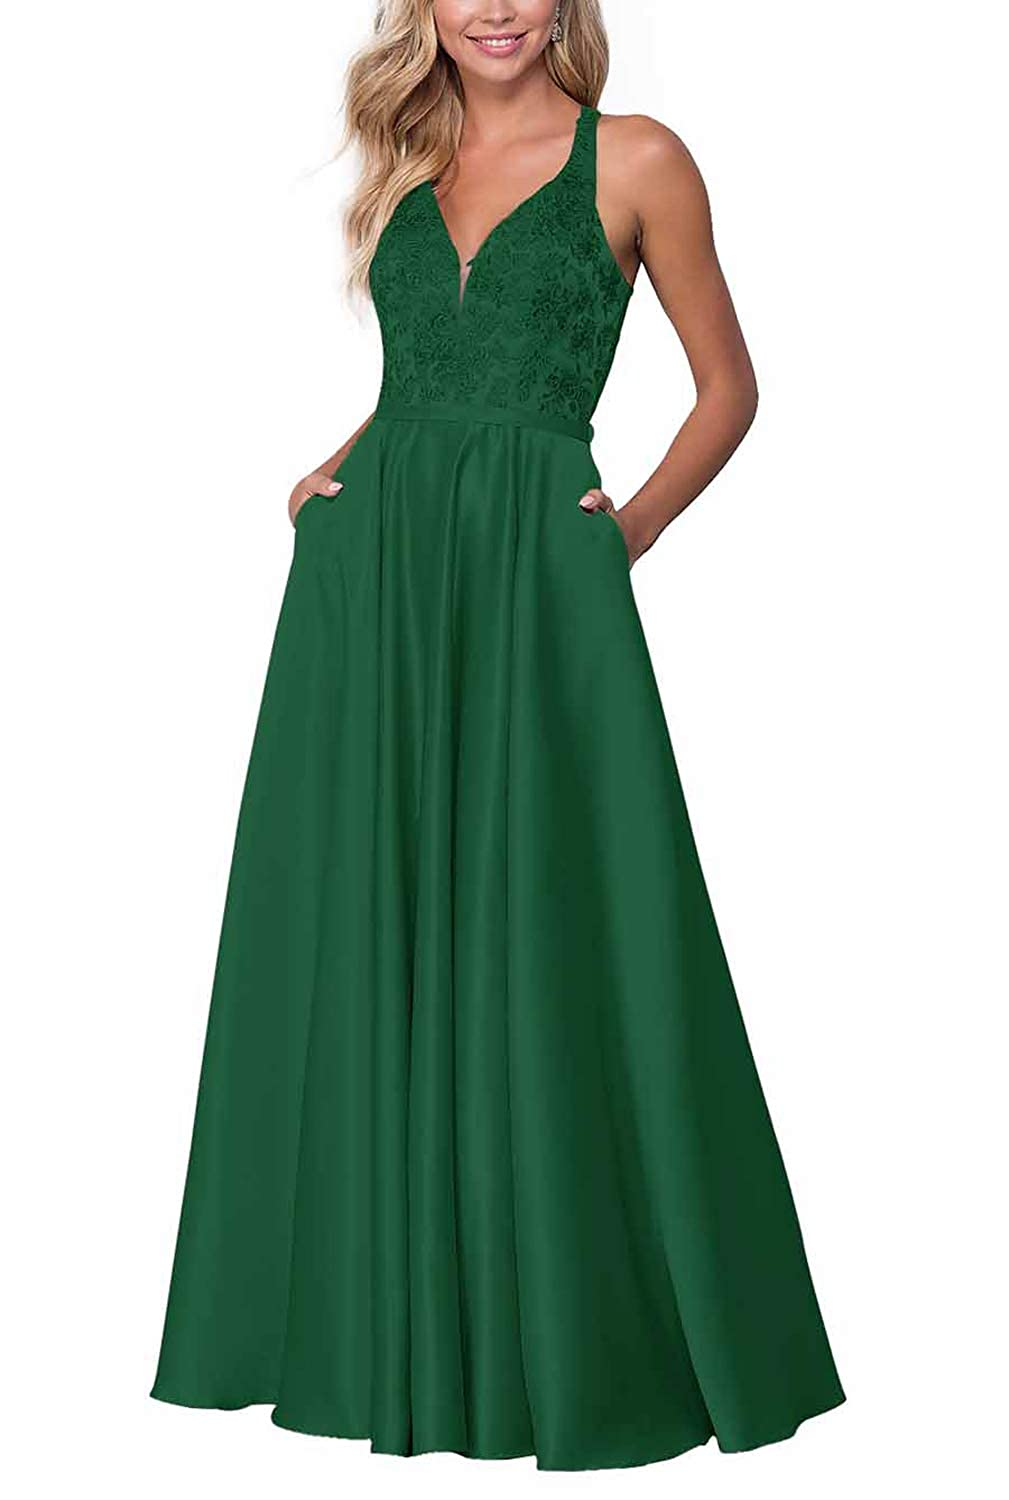 Dark Green PrettyTatum Long VNeck Prom Dresses for Women Evening Gowns with Embroidered Bodice Skirt